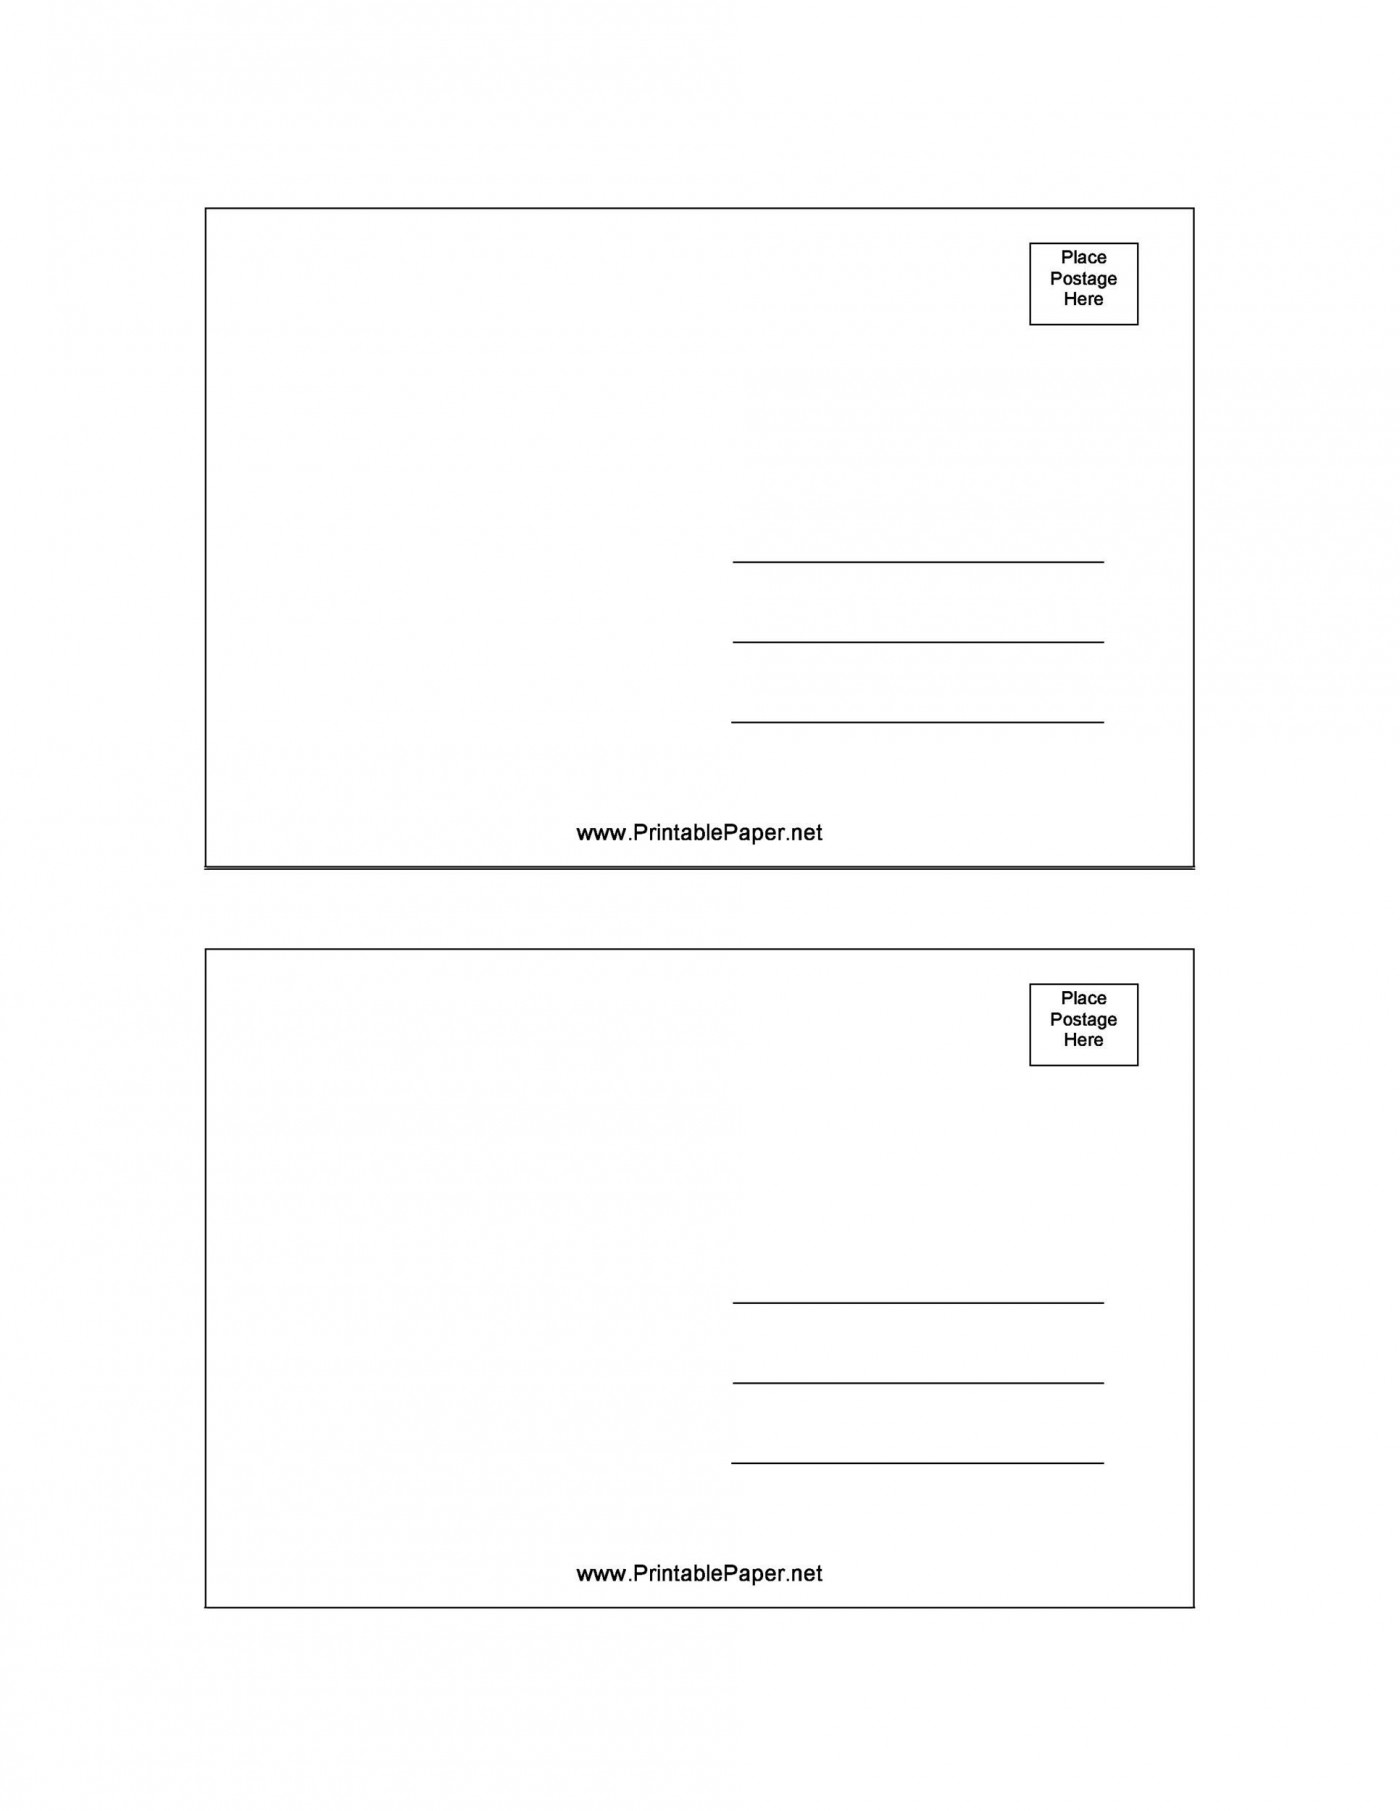 007 Fascinating Postcard Layout For Microsoft Word Picture  Busines Template1400